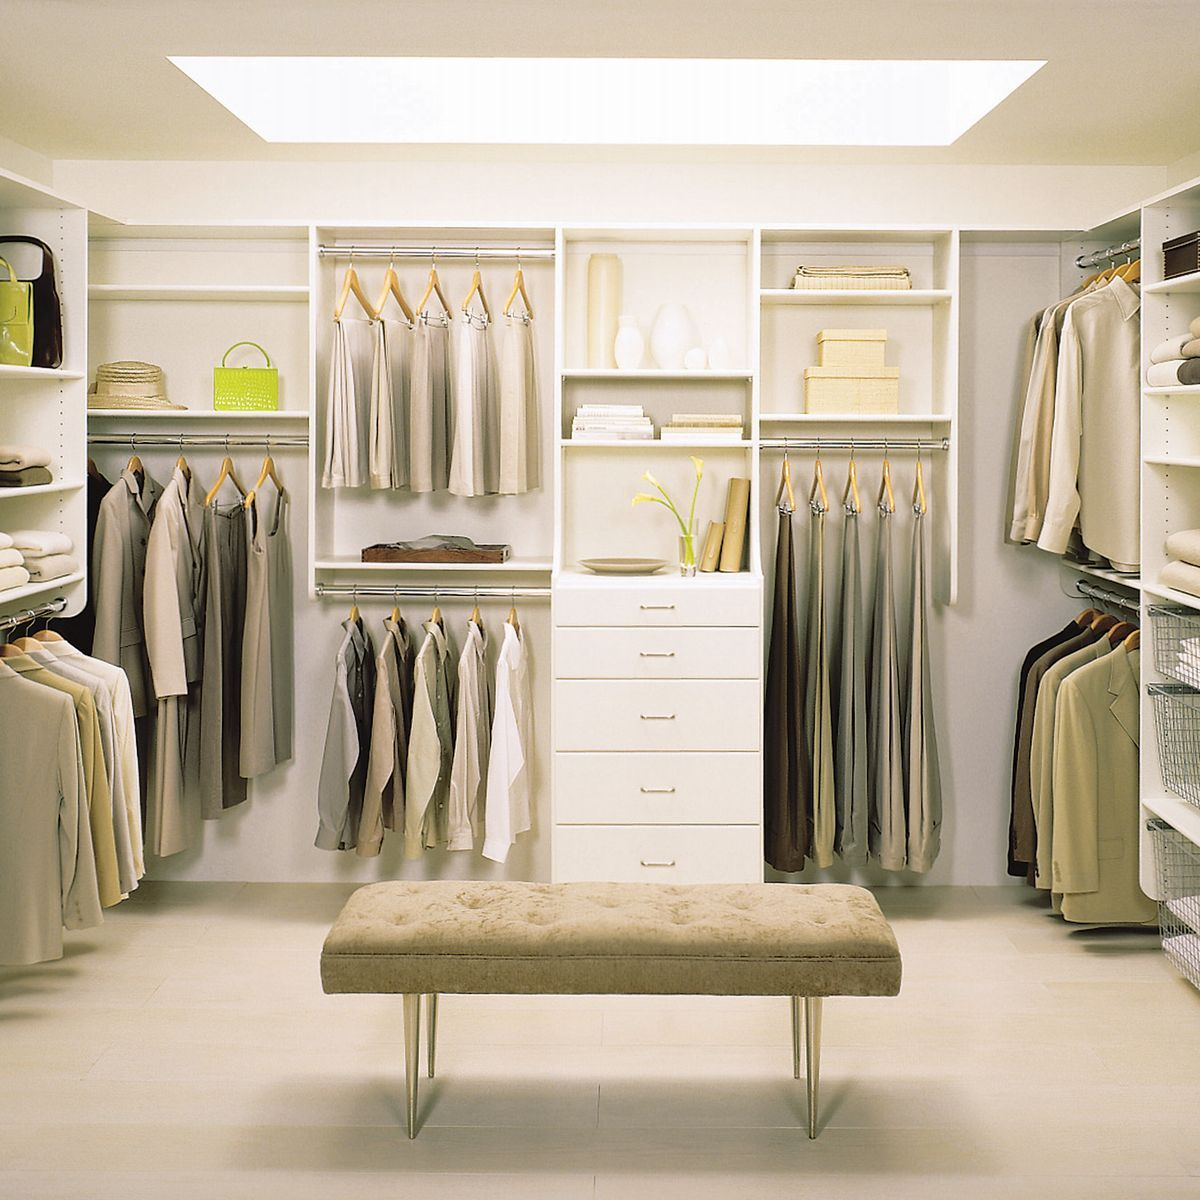 17 best images about closets on pinterest closet organization custom closets and walk in wardrobe design - Custom Closet Design Ideas